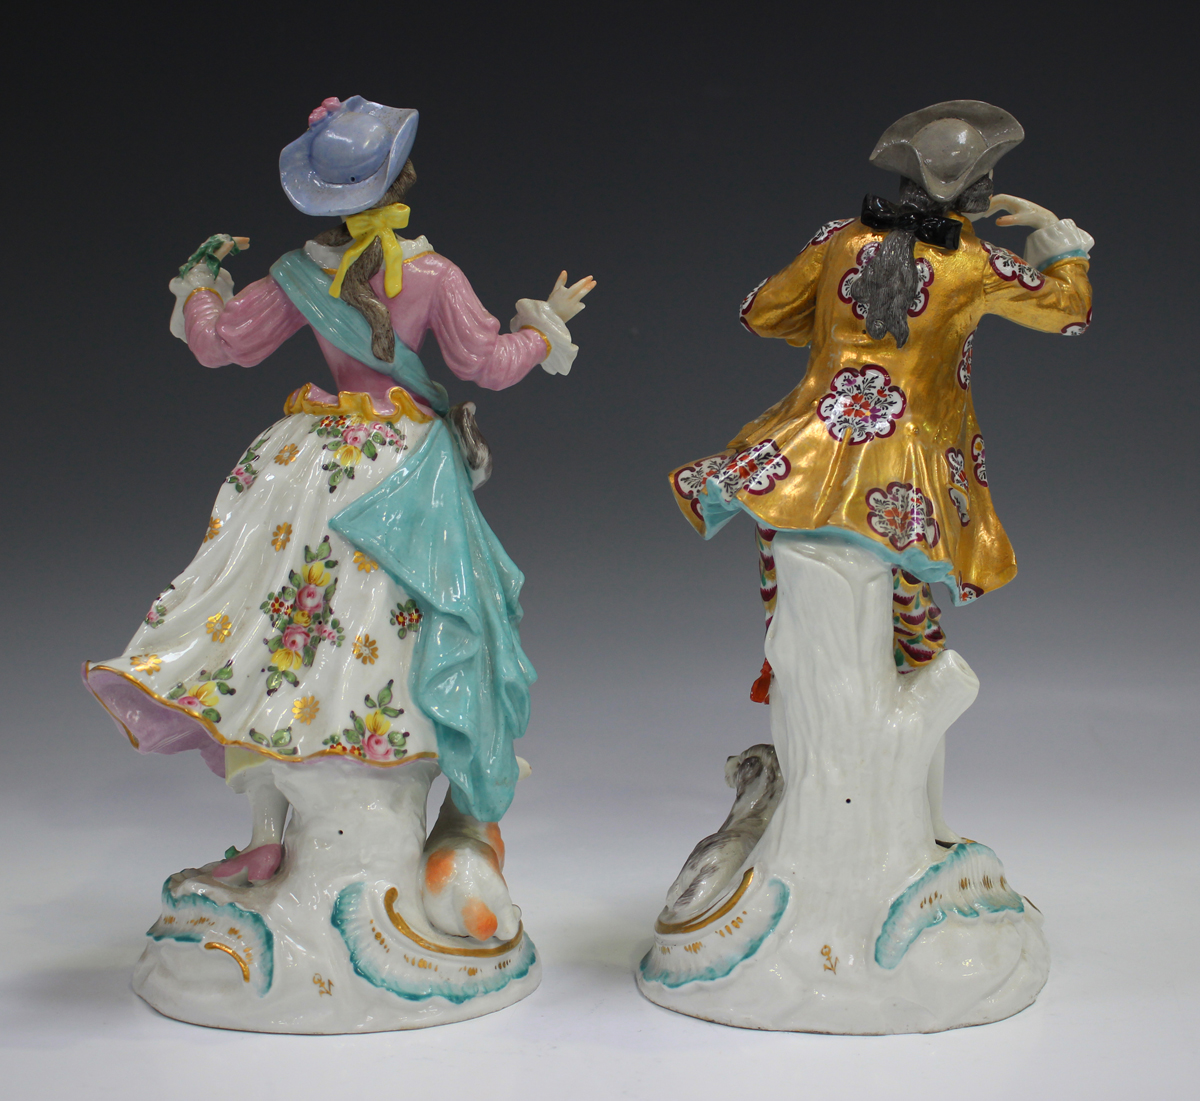 A pair of Continental porcelain figures, late 19th century, modelled in Chelsea style as a gallant - Image 6 of 6